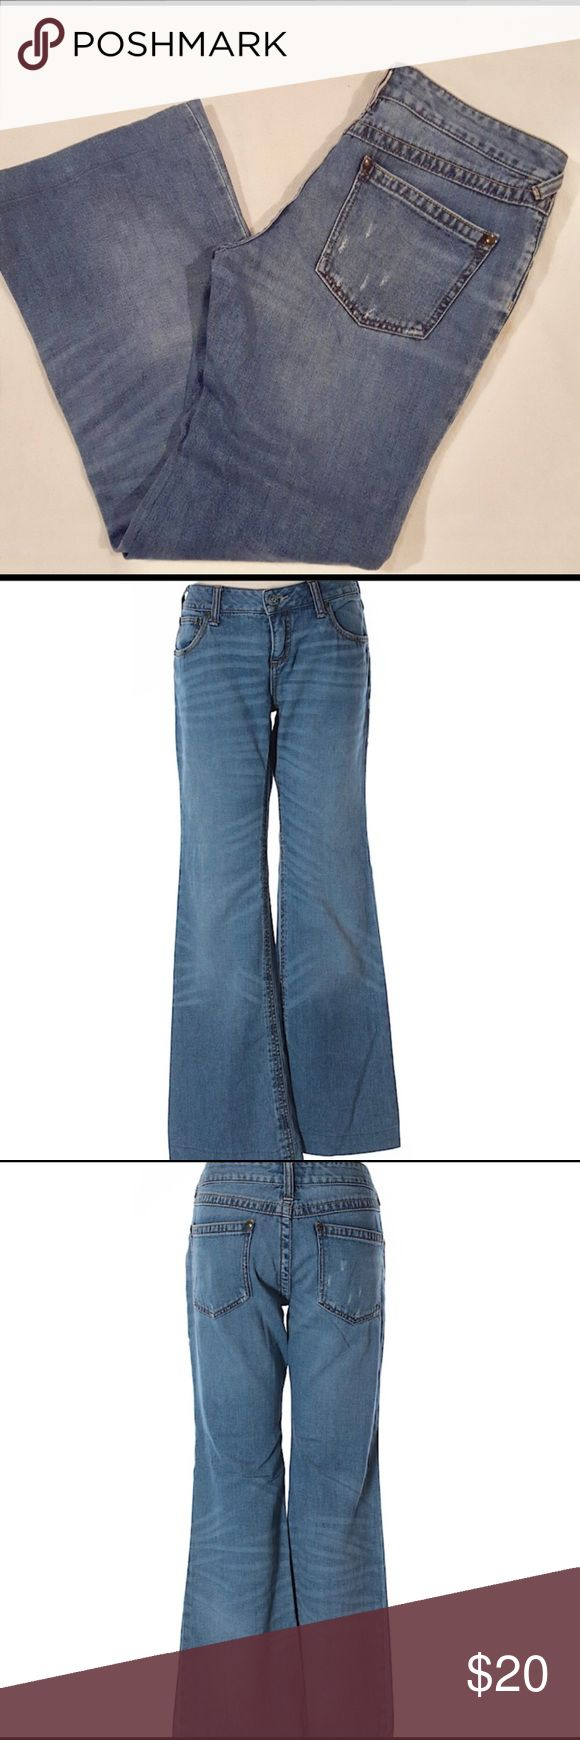 Free People Jeans Free people jeans size 31. Purchased from a fellow posher and are too small. In great condition! Free People Jeans Flare & Wide Leg